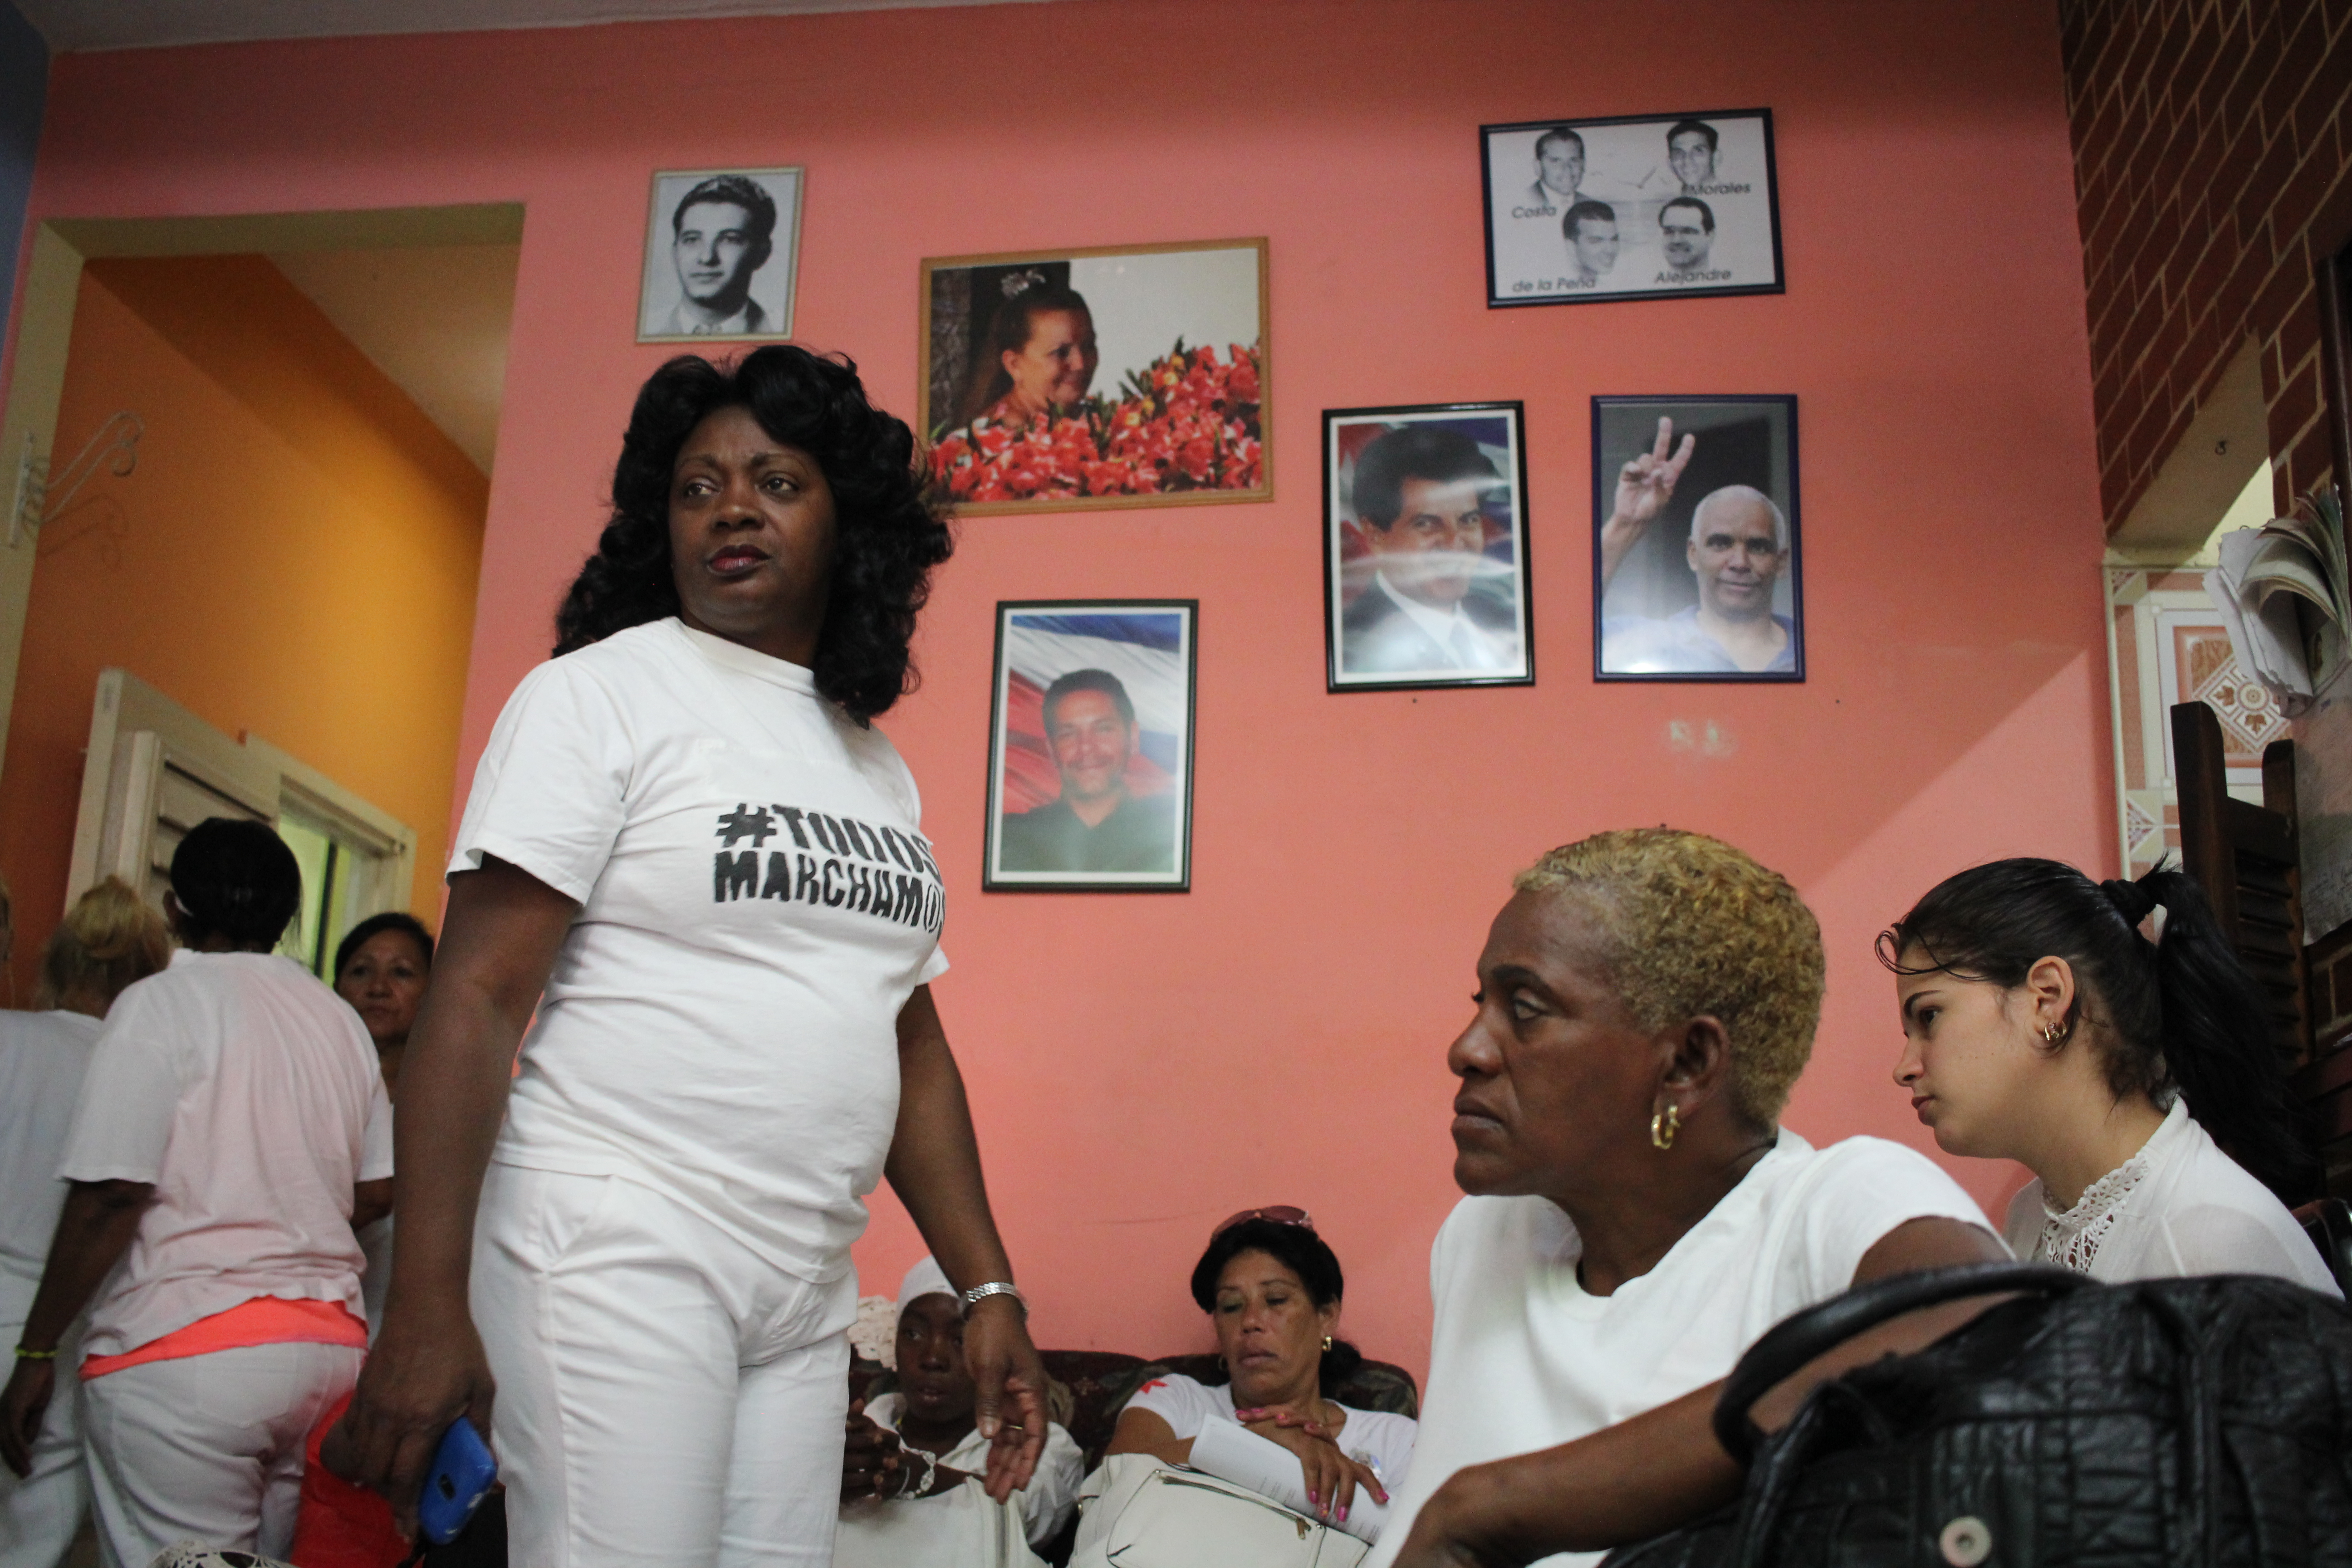 Berta Soler, left, at the Ladies in White headquarters in Havana, Cuba, the morning before her arrest. March 20, 2016. (V. Macchi/VOA)